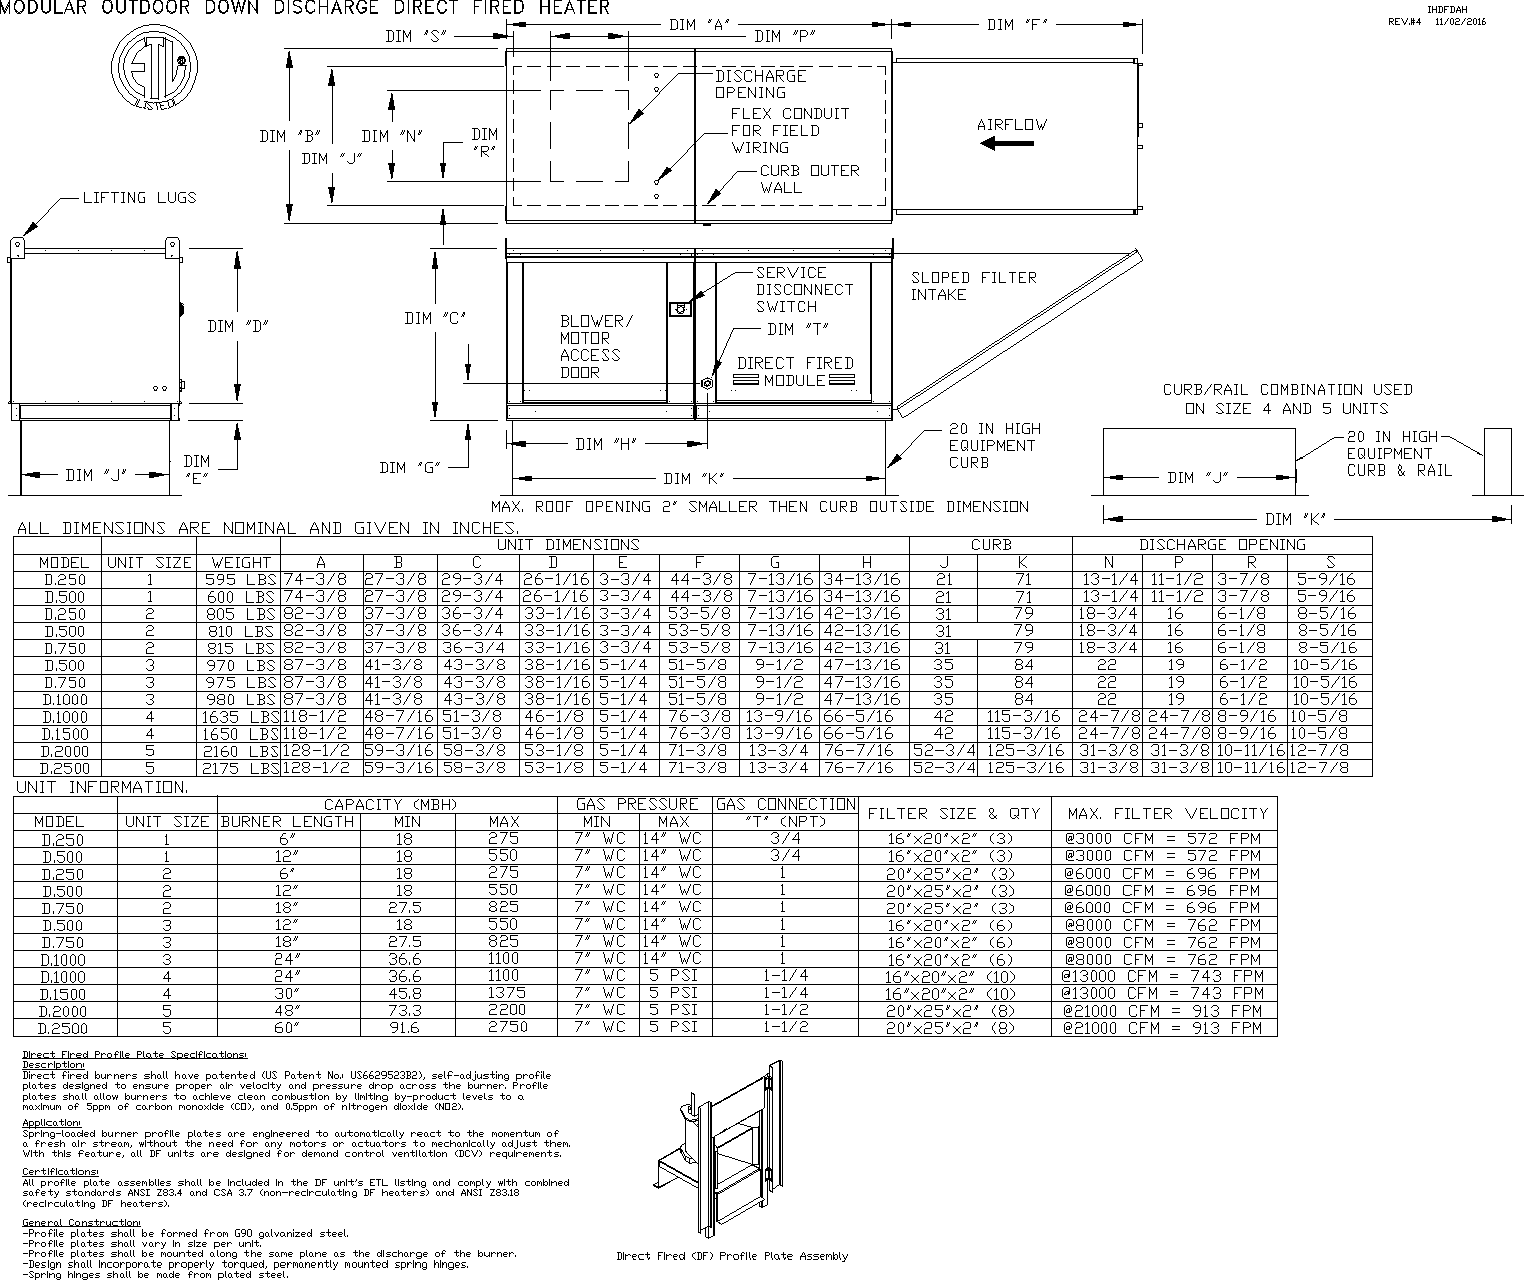 Direct Fired Heater Submittal Drawing